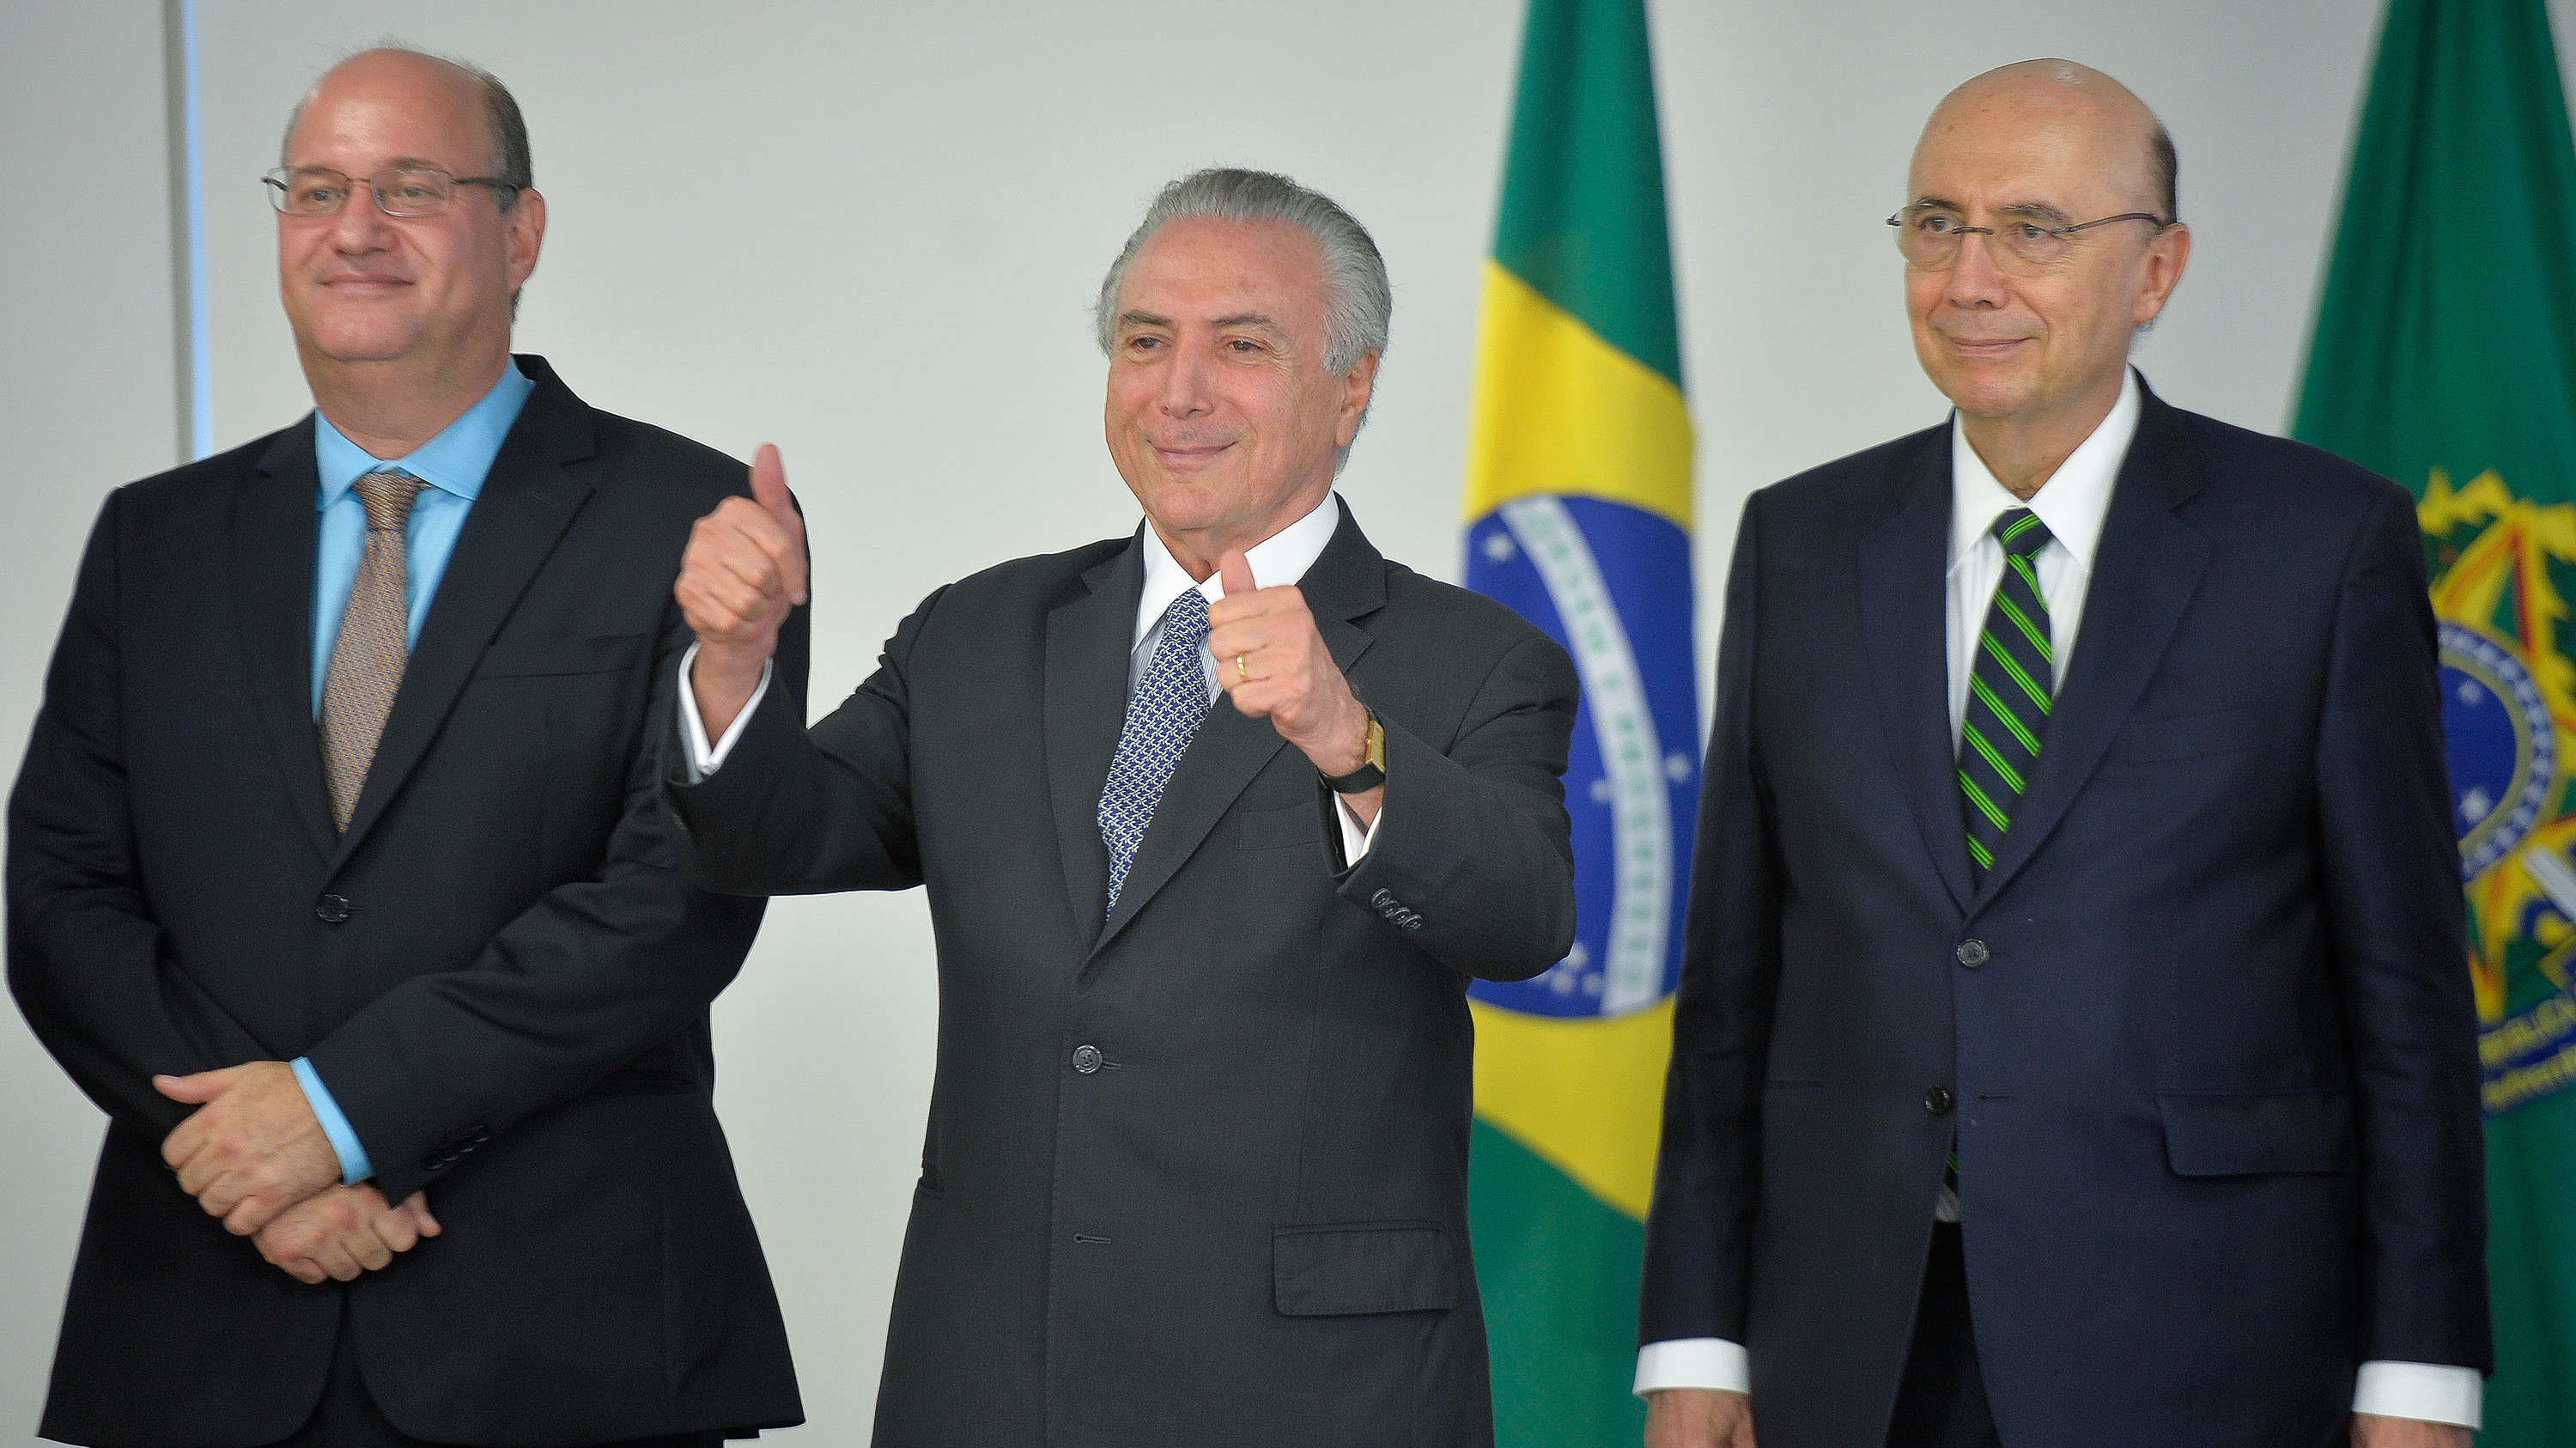 Brazil's New President Loves Appointing White Men Accused of Corruption and Attempted Murder